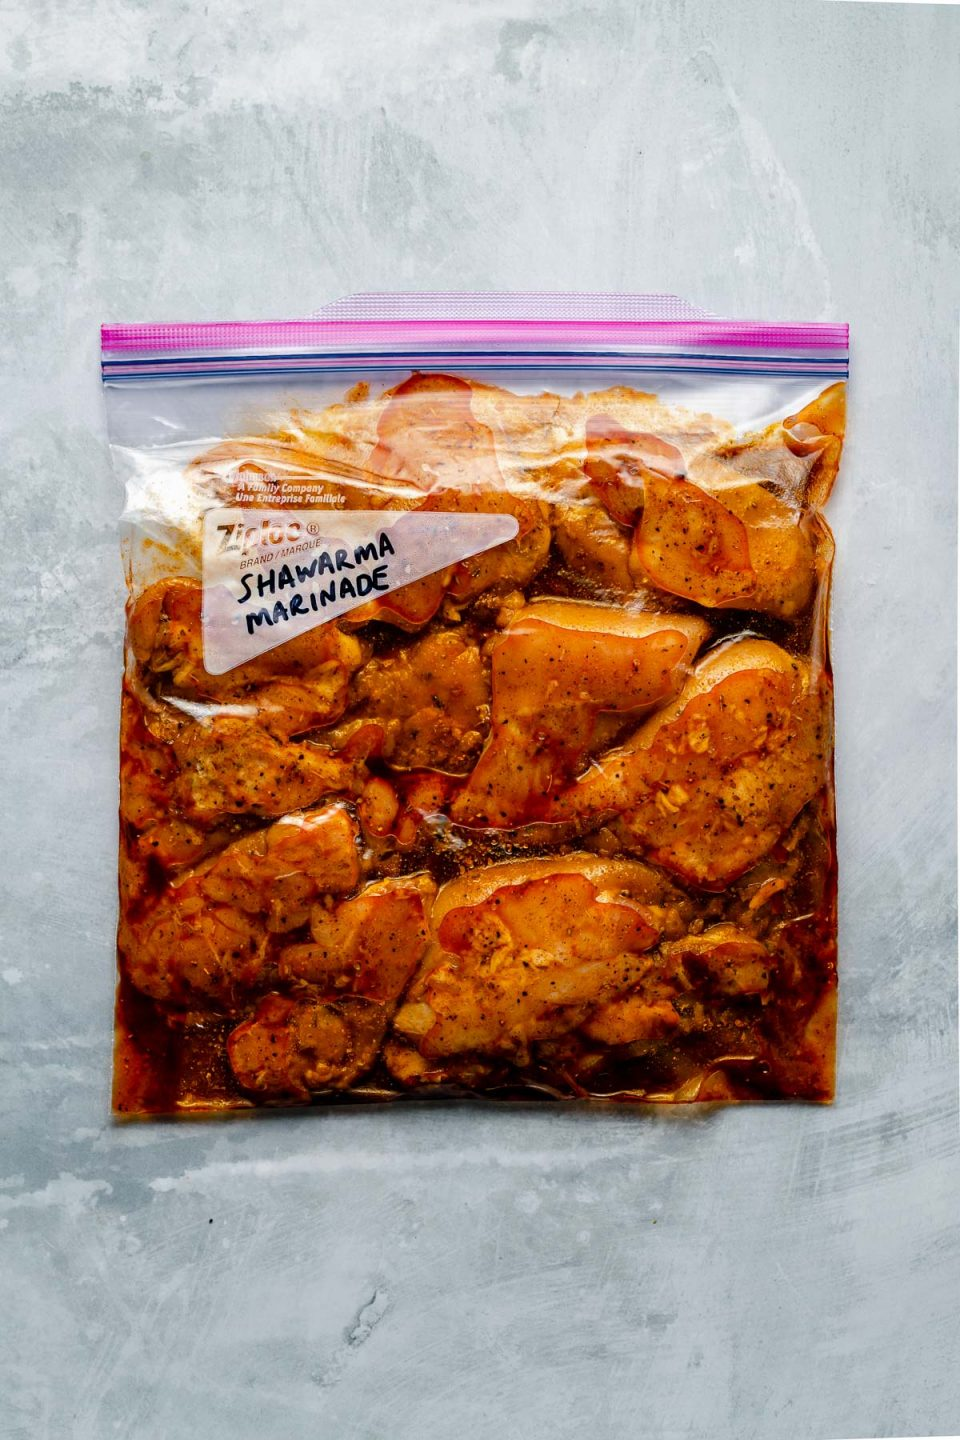 """Chicken thighs in a Ziploc bag, marinating in Shawarma marinade. The bag sits atop a light blue surface. """"Shawarma Marinade"""" is penned in the bag's memo area."""